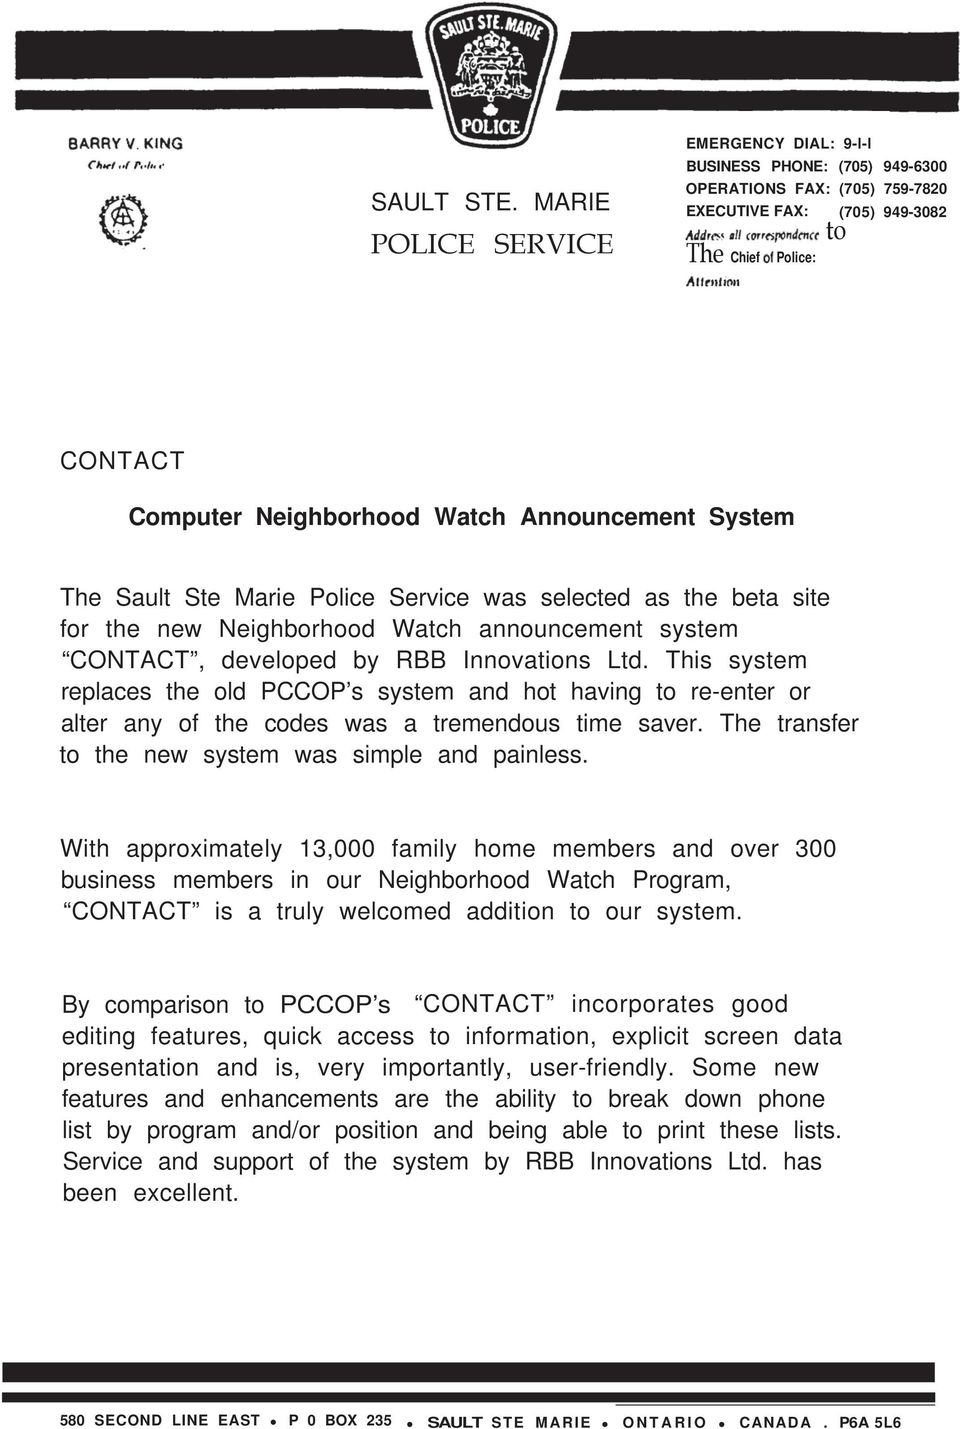 Announcement System The Sault Ste Marie Police Service was selected as the beta site for the new Neighborhood Watch announcement system CONTACT, developed by RBB Innovations Ltd.